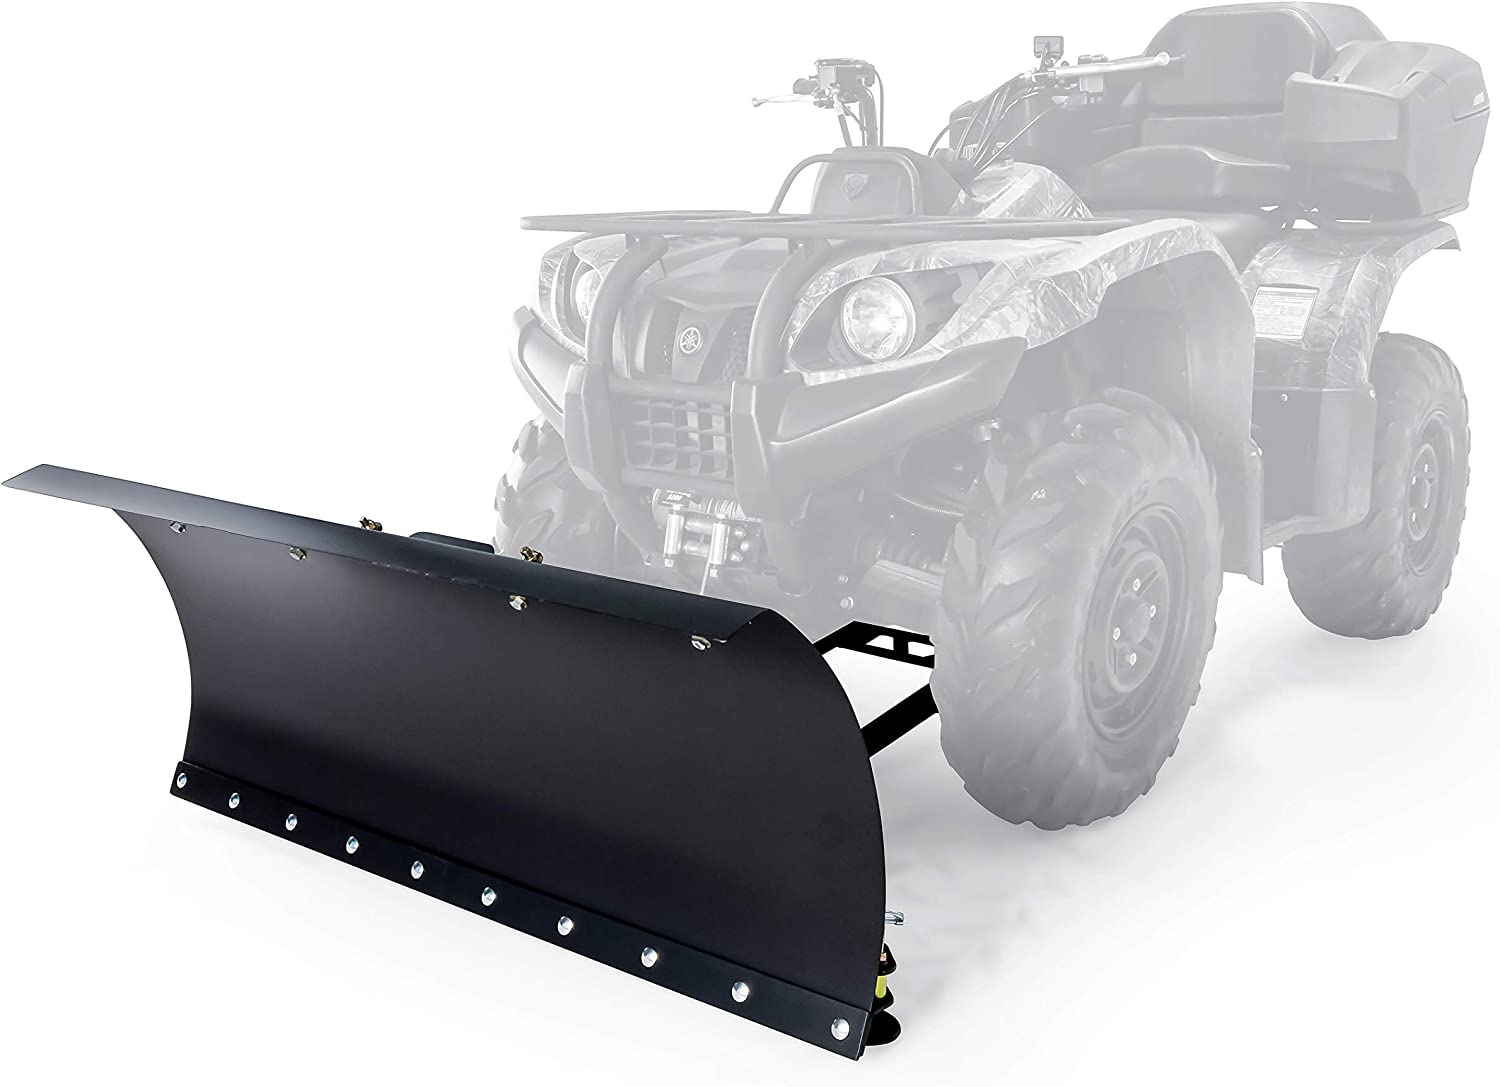 Amazon Com Black Boar Snow Plow Kit Atv Kit 48 With 9 Position Blade Angle Adjusts To 30 Degrees To Each Side 66016 Automotive